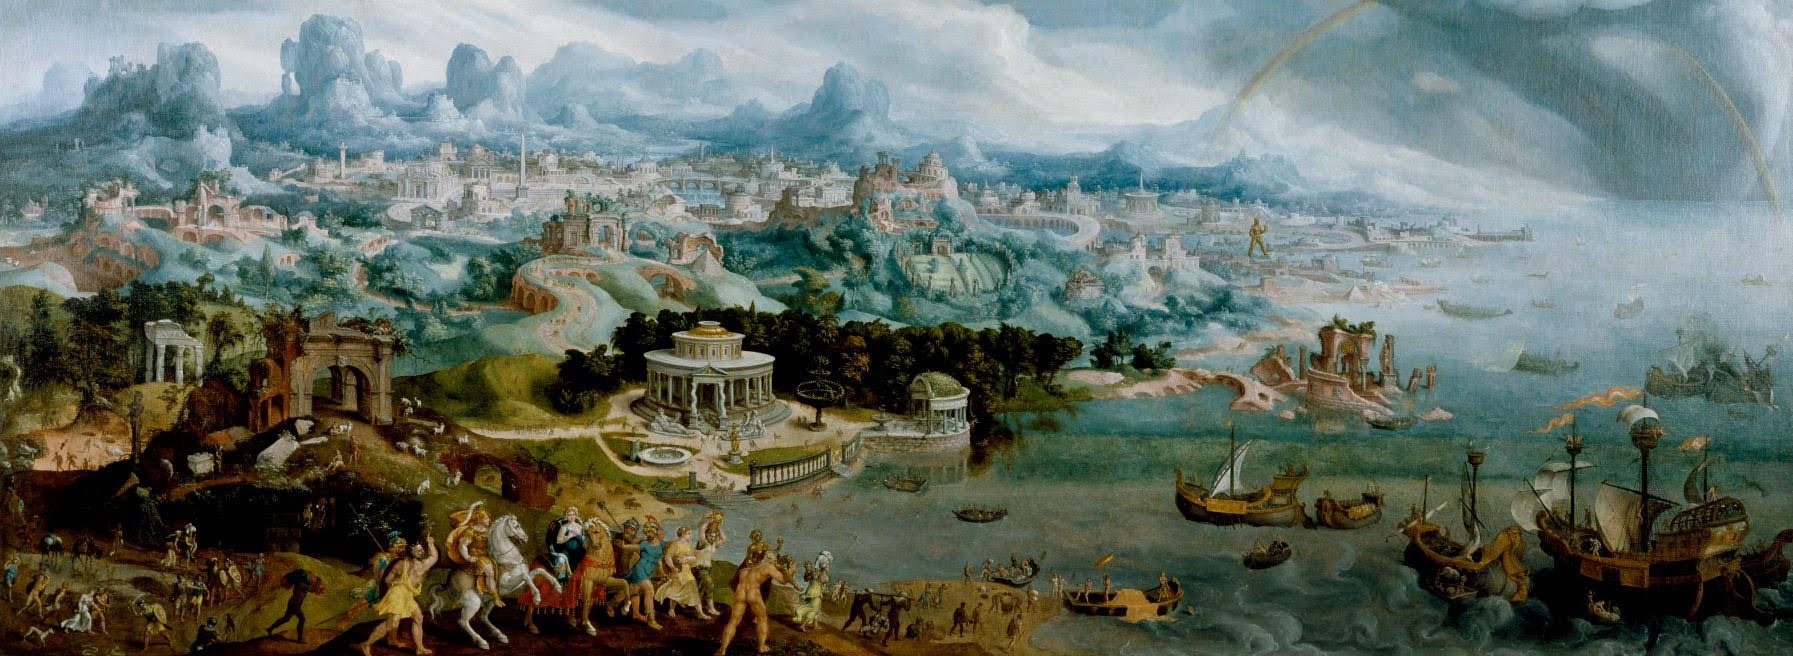 Seven Wonders as background for Maerten van Heemskerck's Abduction of Helen by Paris